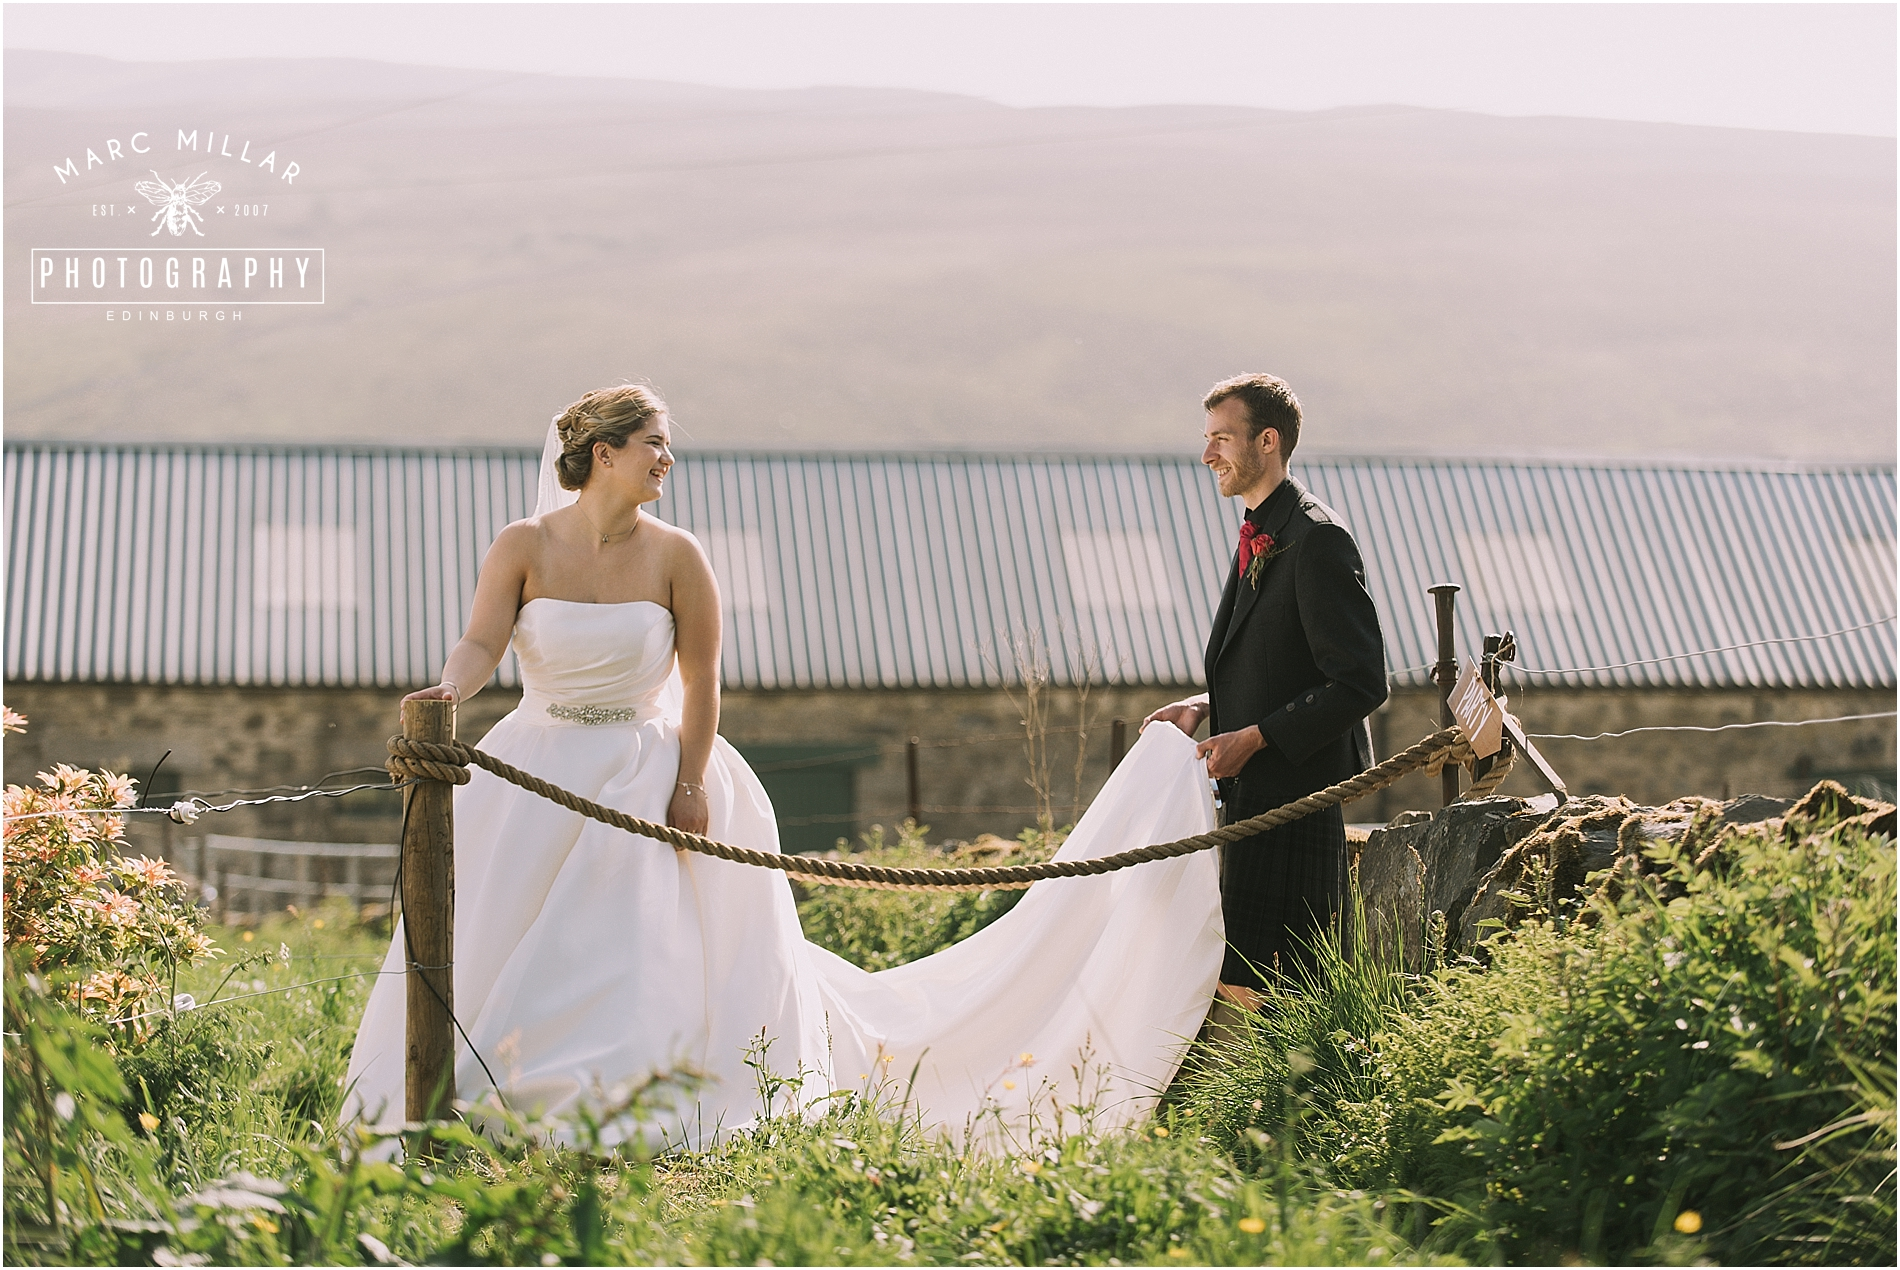 Home Farm Wedding Photography by Marc Millar Wedding Photography